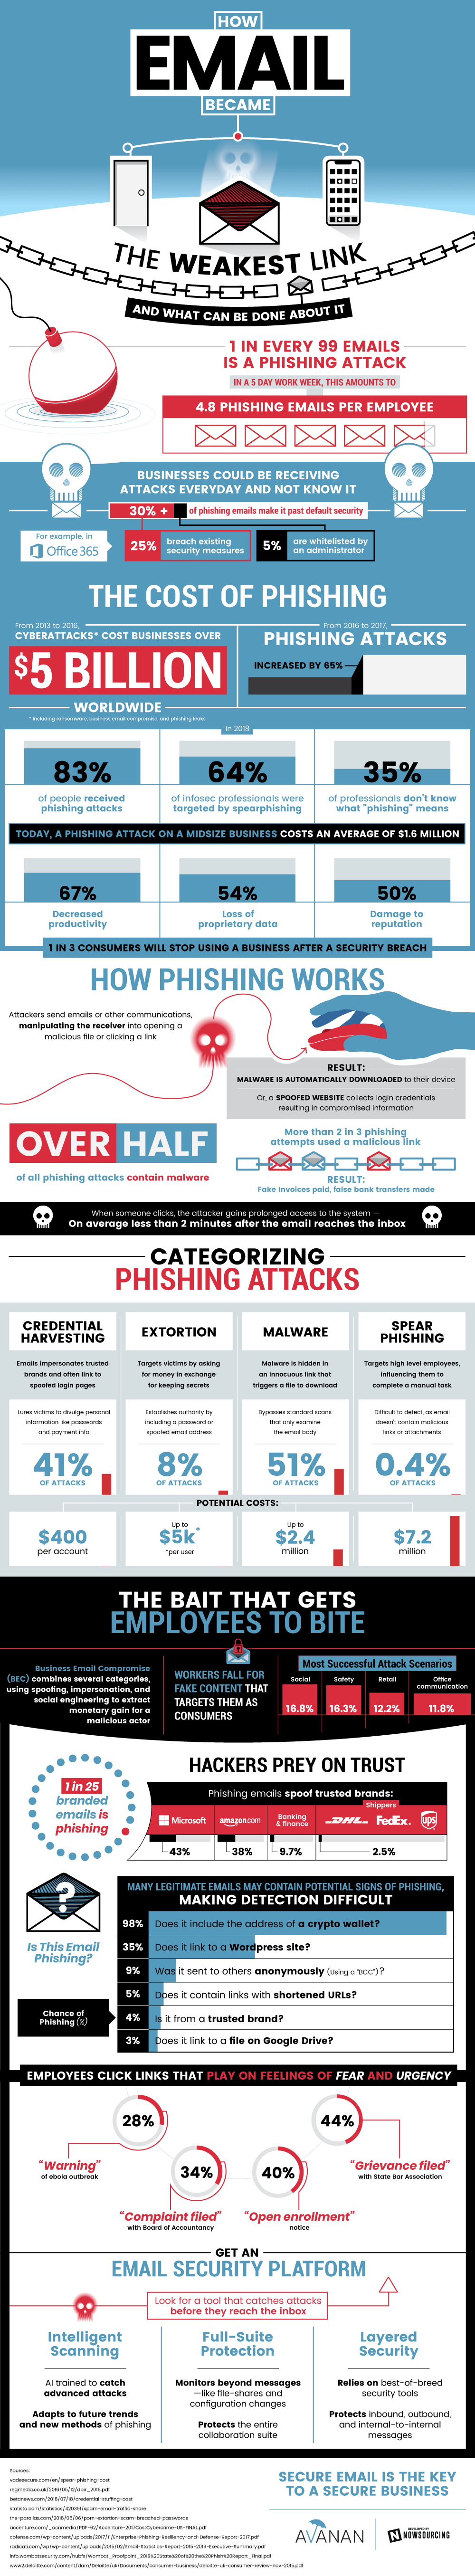 How Email Became the Weakest Link [infographic]